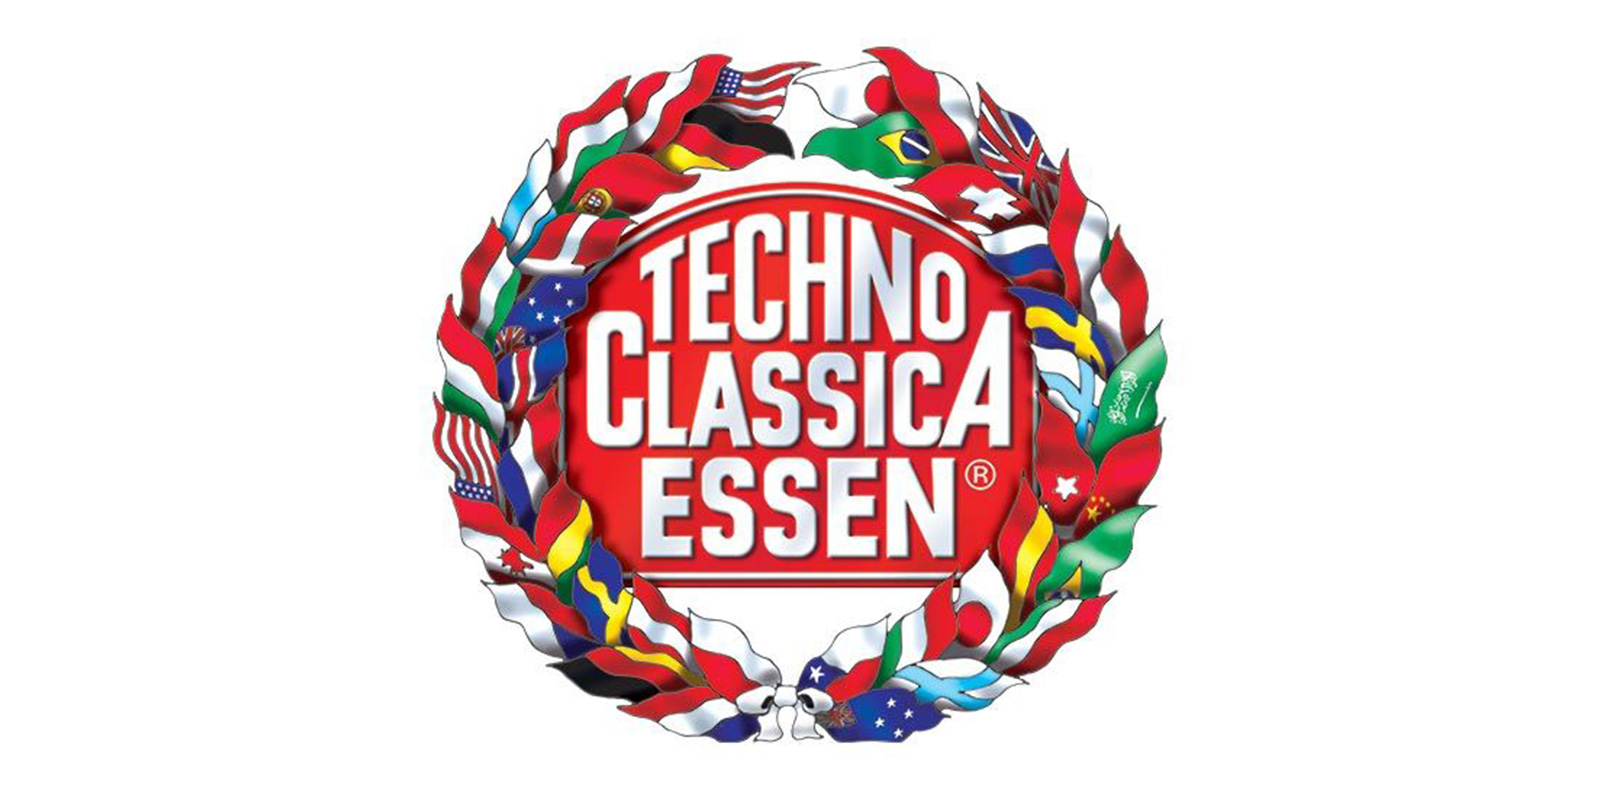 Techno Classica Essen 21 -  25 march 2018